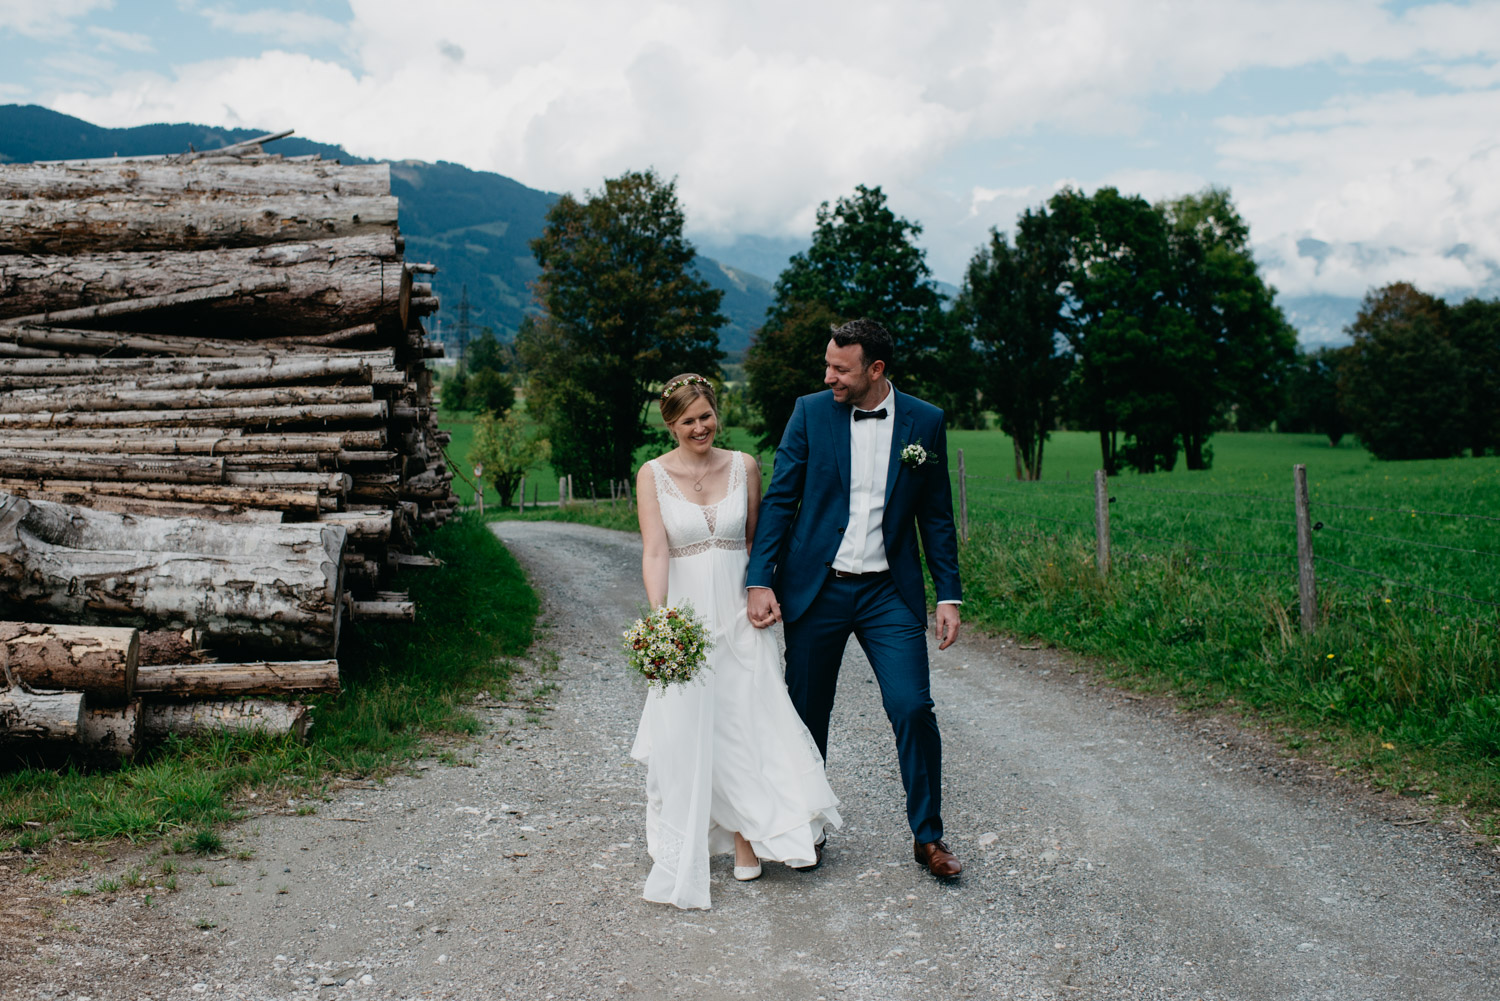 sophie-malte-hochzeitsfotografin-hochzeitsfotografen-salzburg-schloss-kammer-maishofen-wedding-photographer-austria-32 Hochzeitsfotografin aus Tirol & Wien | Wedding Photographer Tyrol Austria